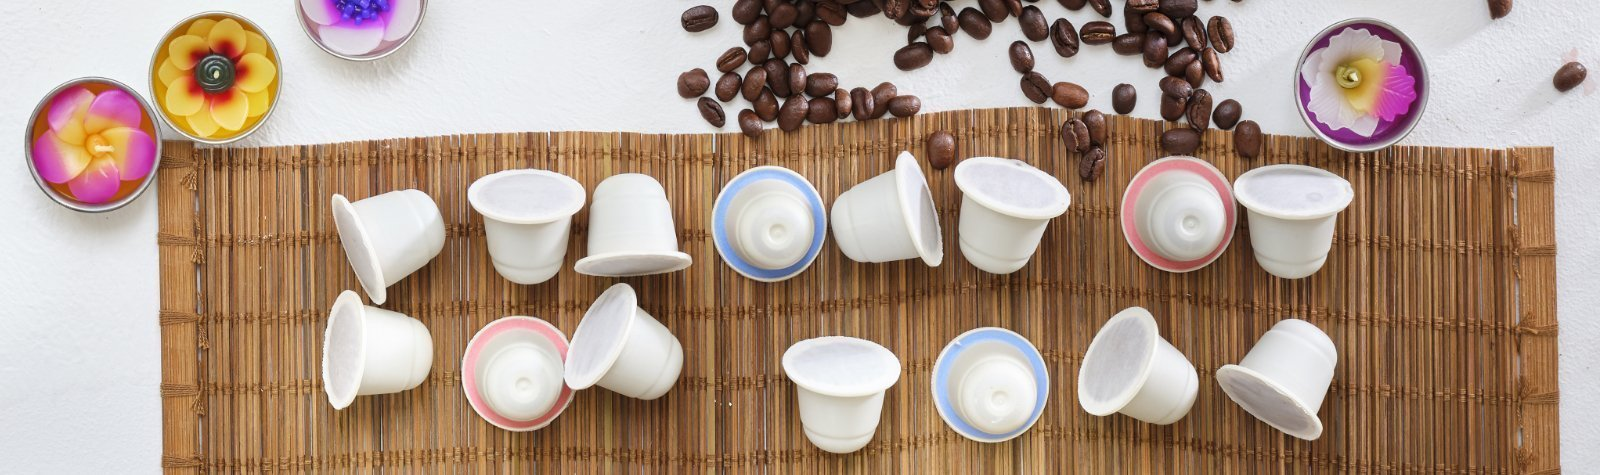 eco friendly coffee pods - compostable coffee capsules - compostable nespresso pods - eco coffee pods Compostable Nespresso pods